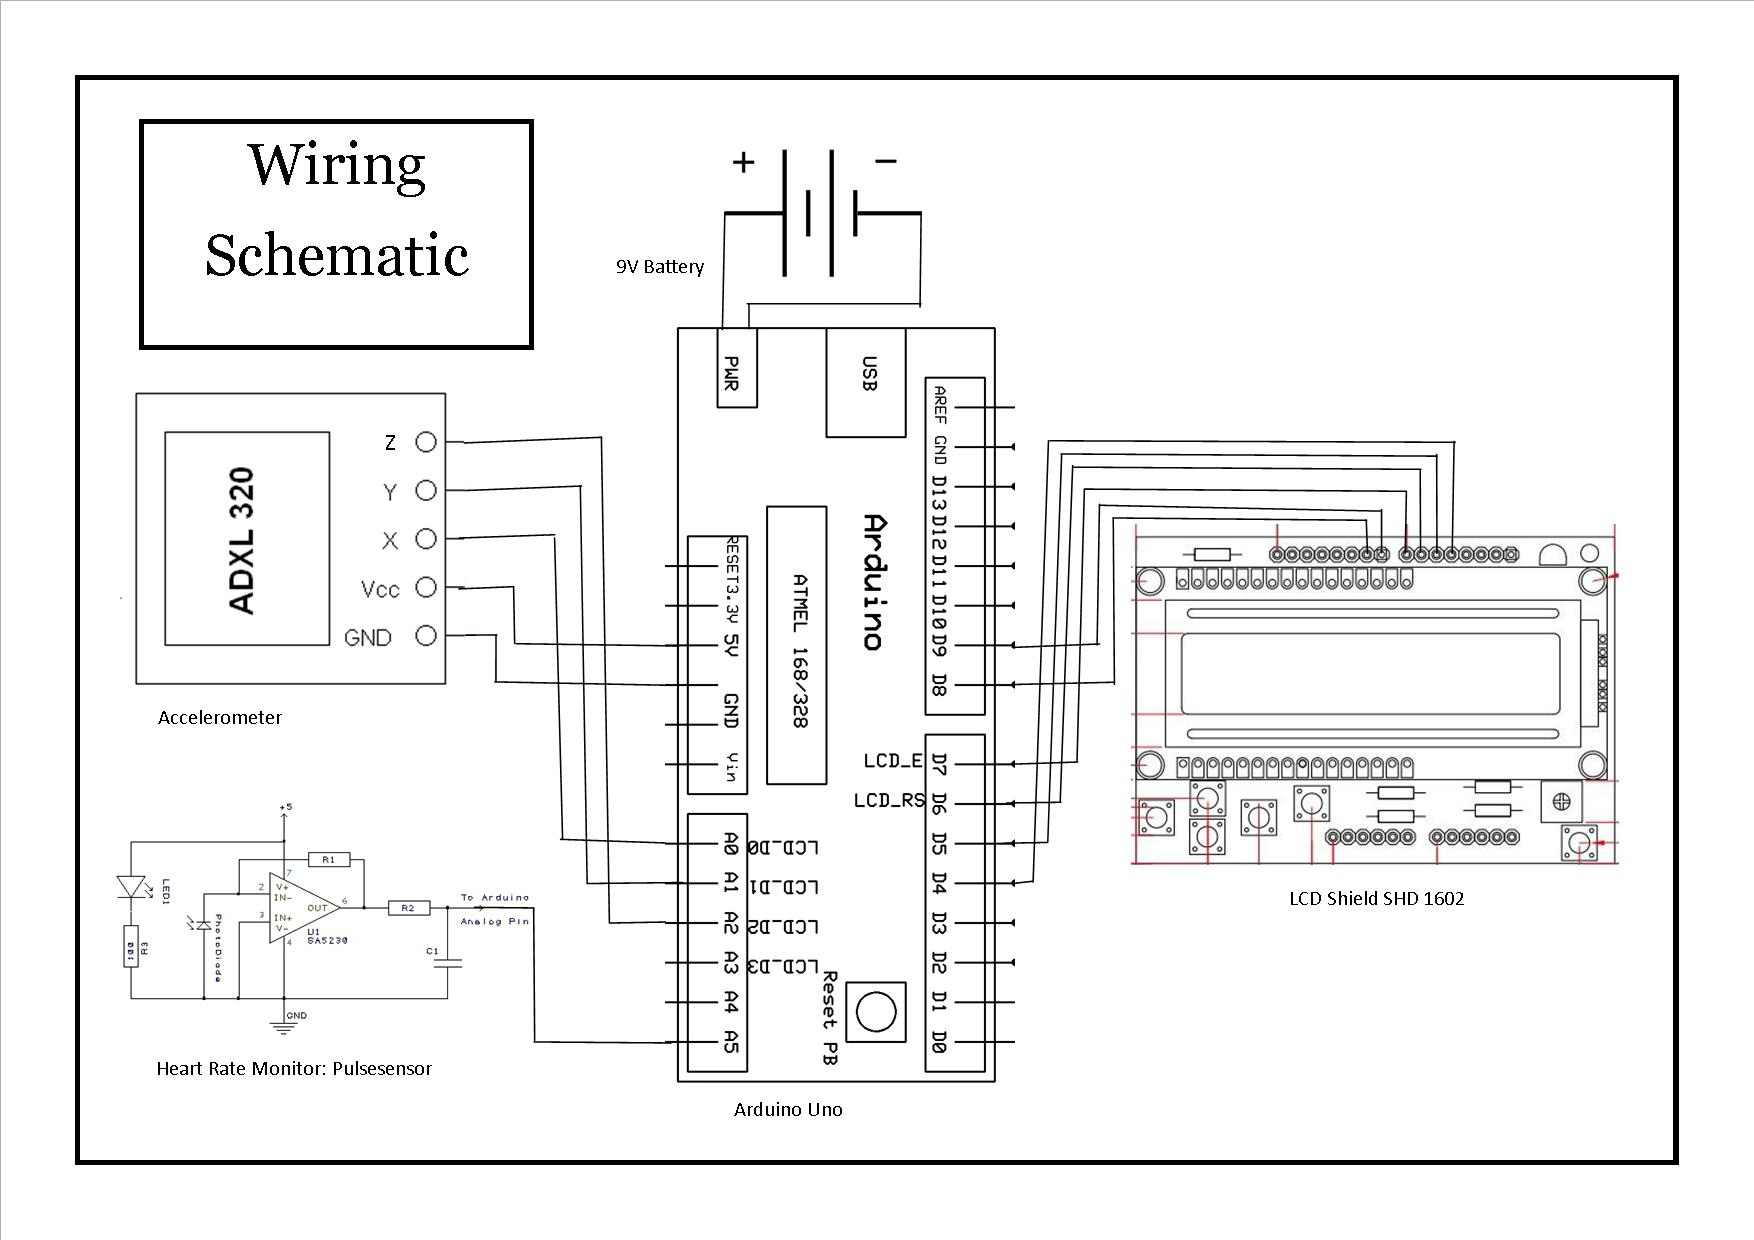 Vibration Wiring Diagram Electronicswiring Buck Converter Led Driver Circuit Patent 7750616 Pictures To Pin On Parent Directory 9a Schematic